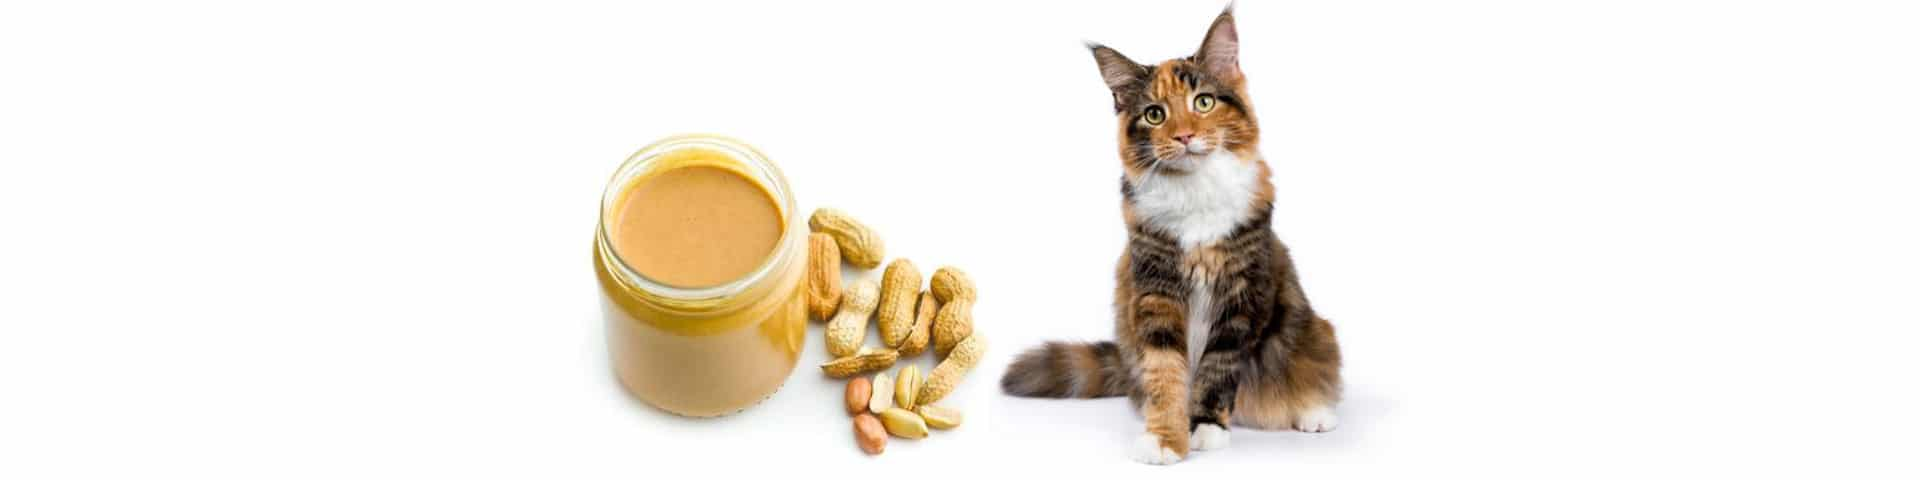 Peanut butter and cat